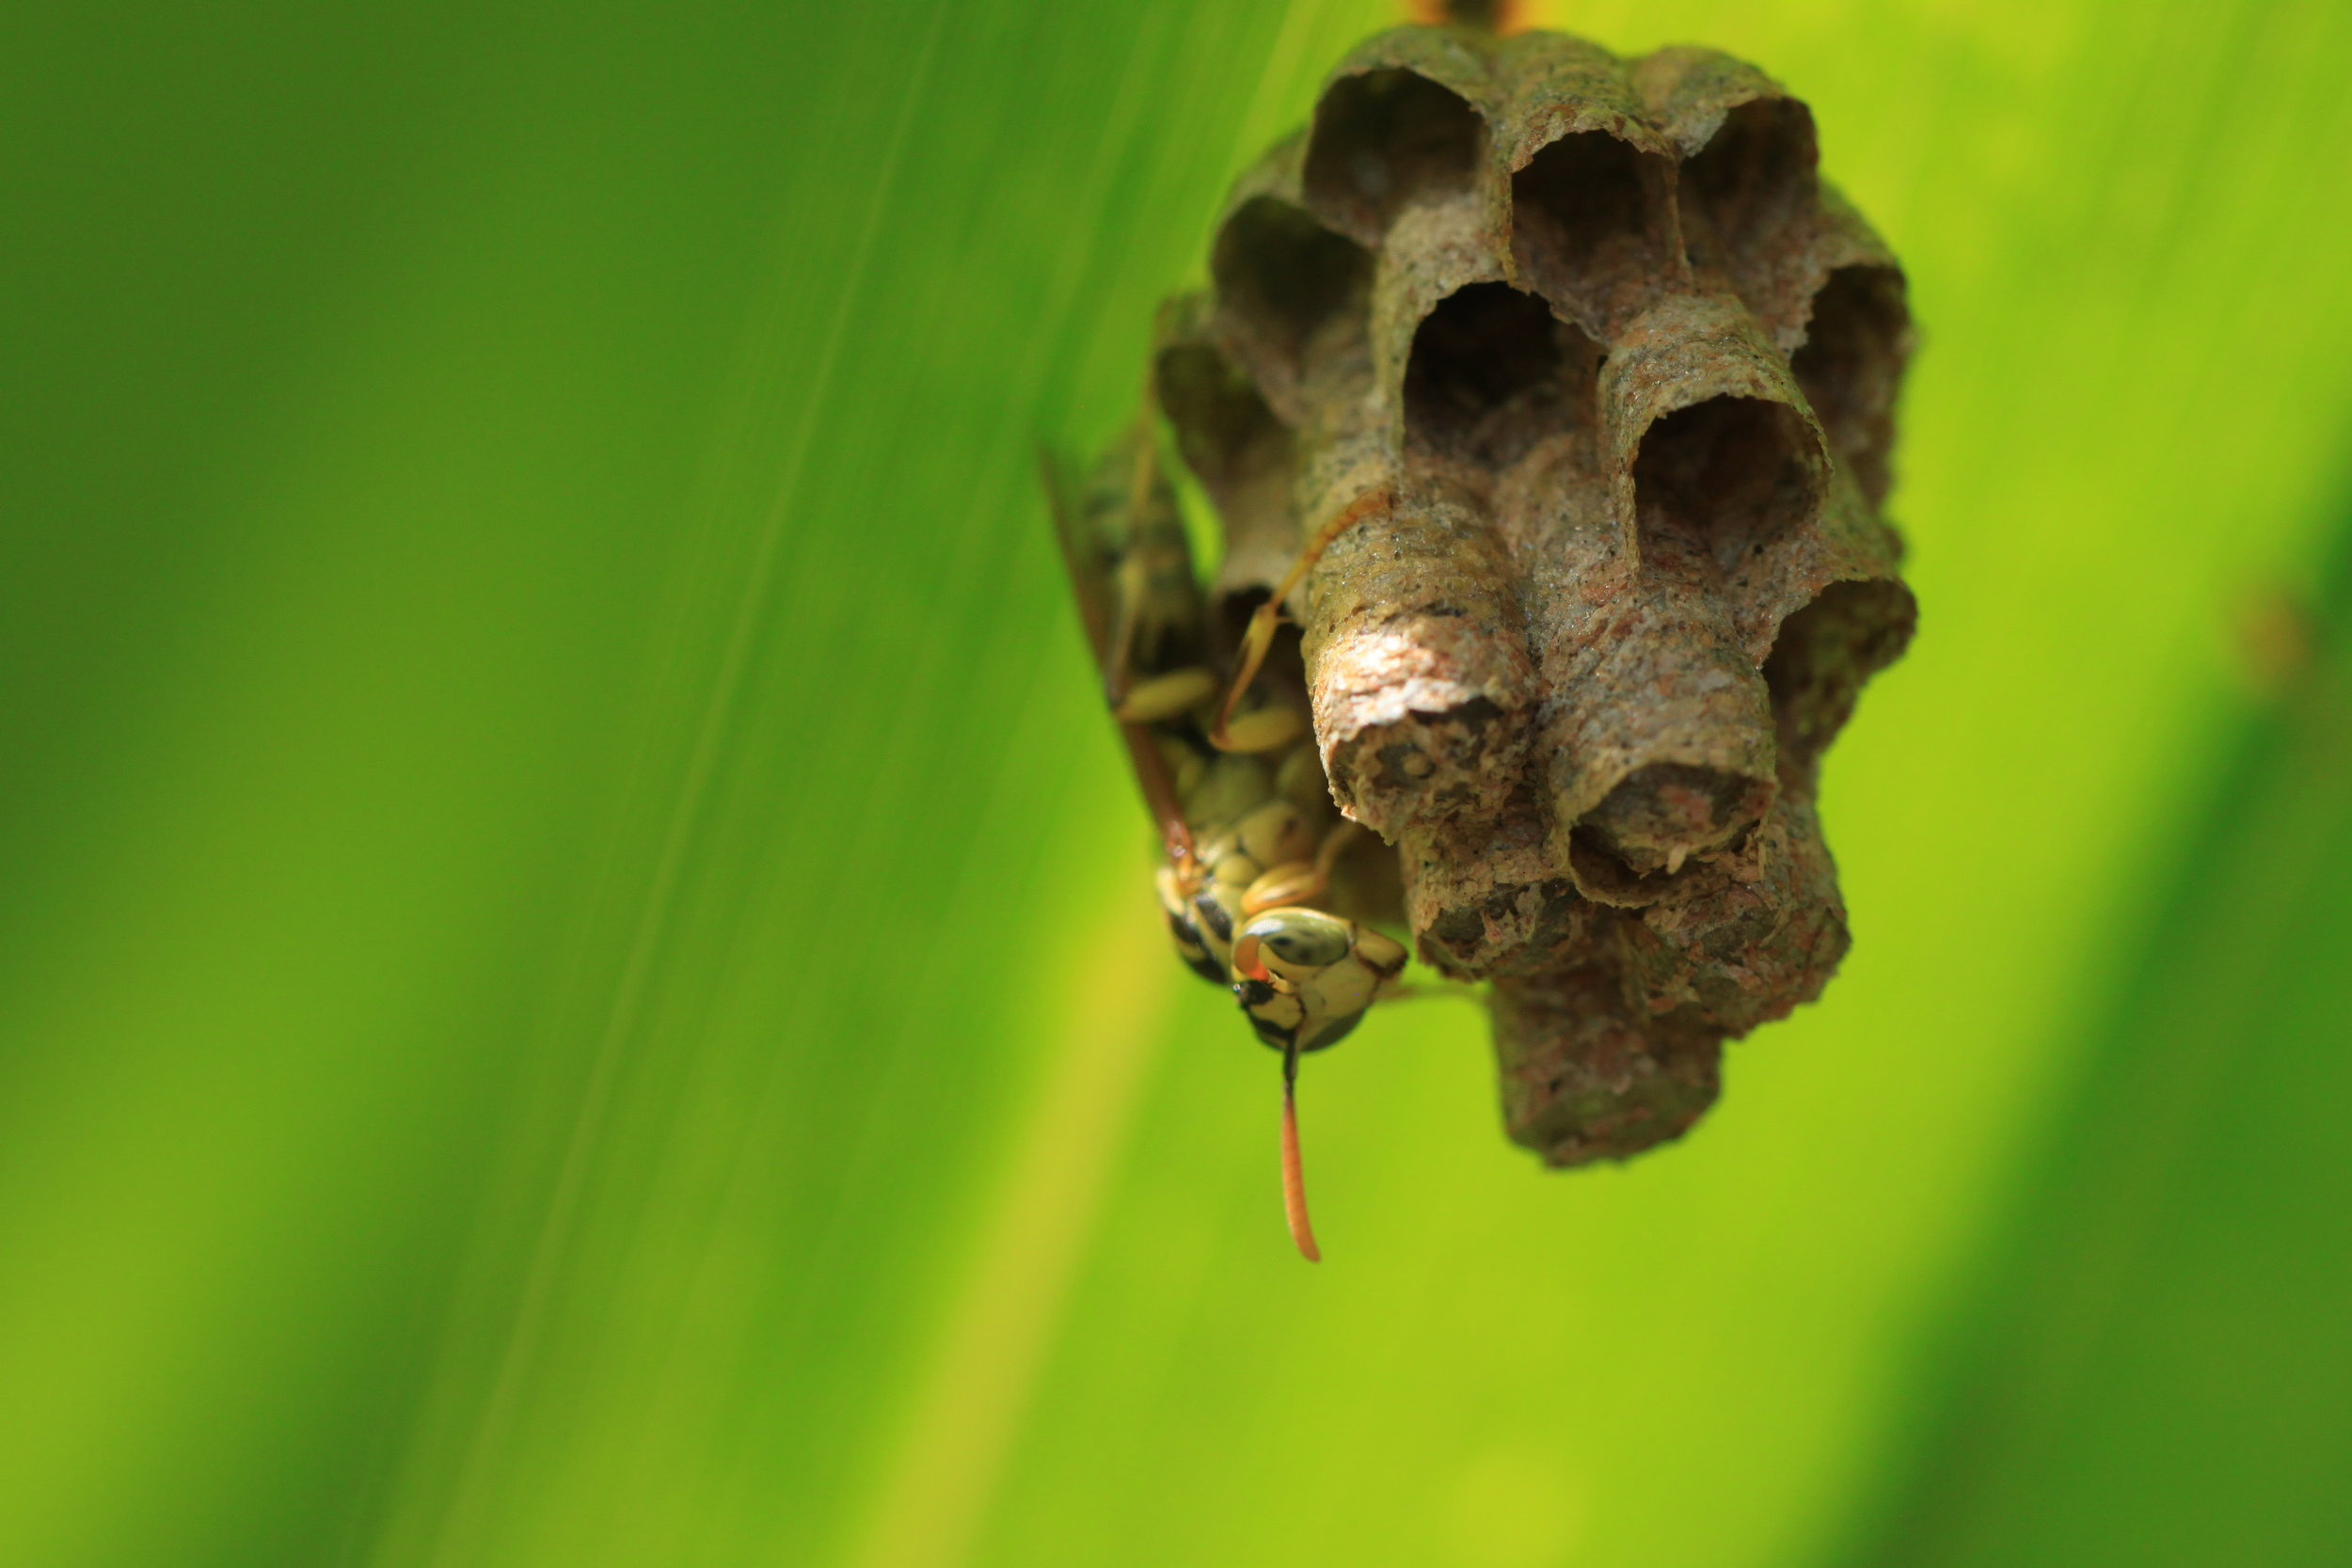 Paper wasp in Manuel Antonio, Costa Rica.